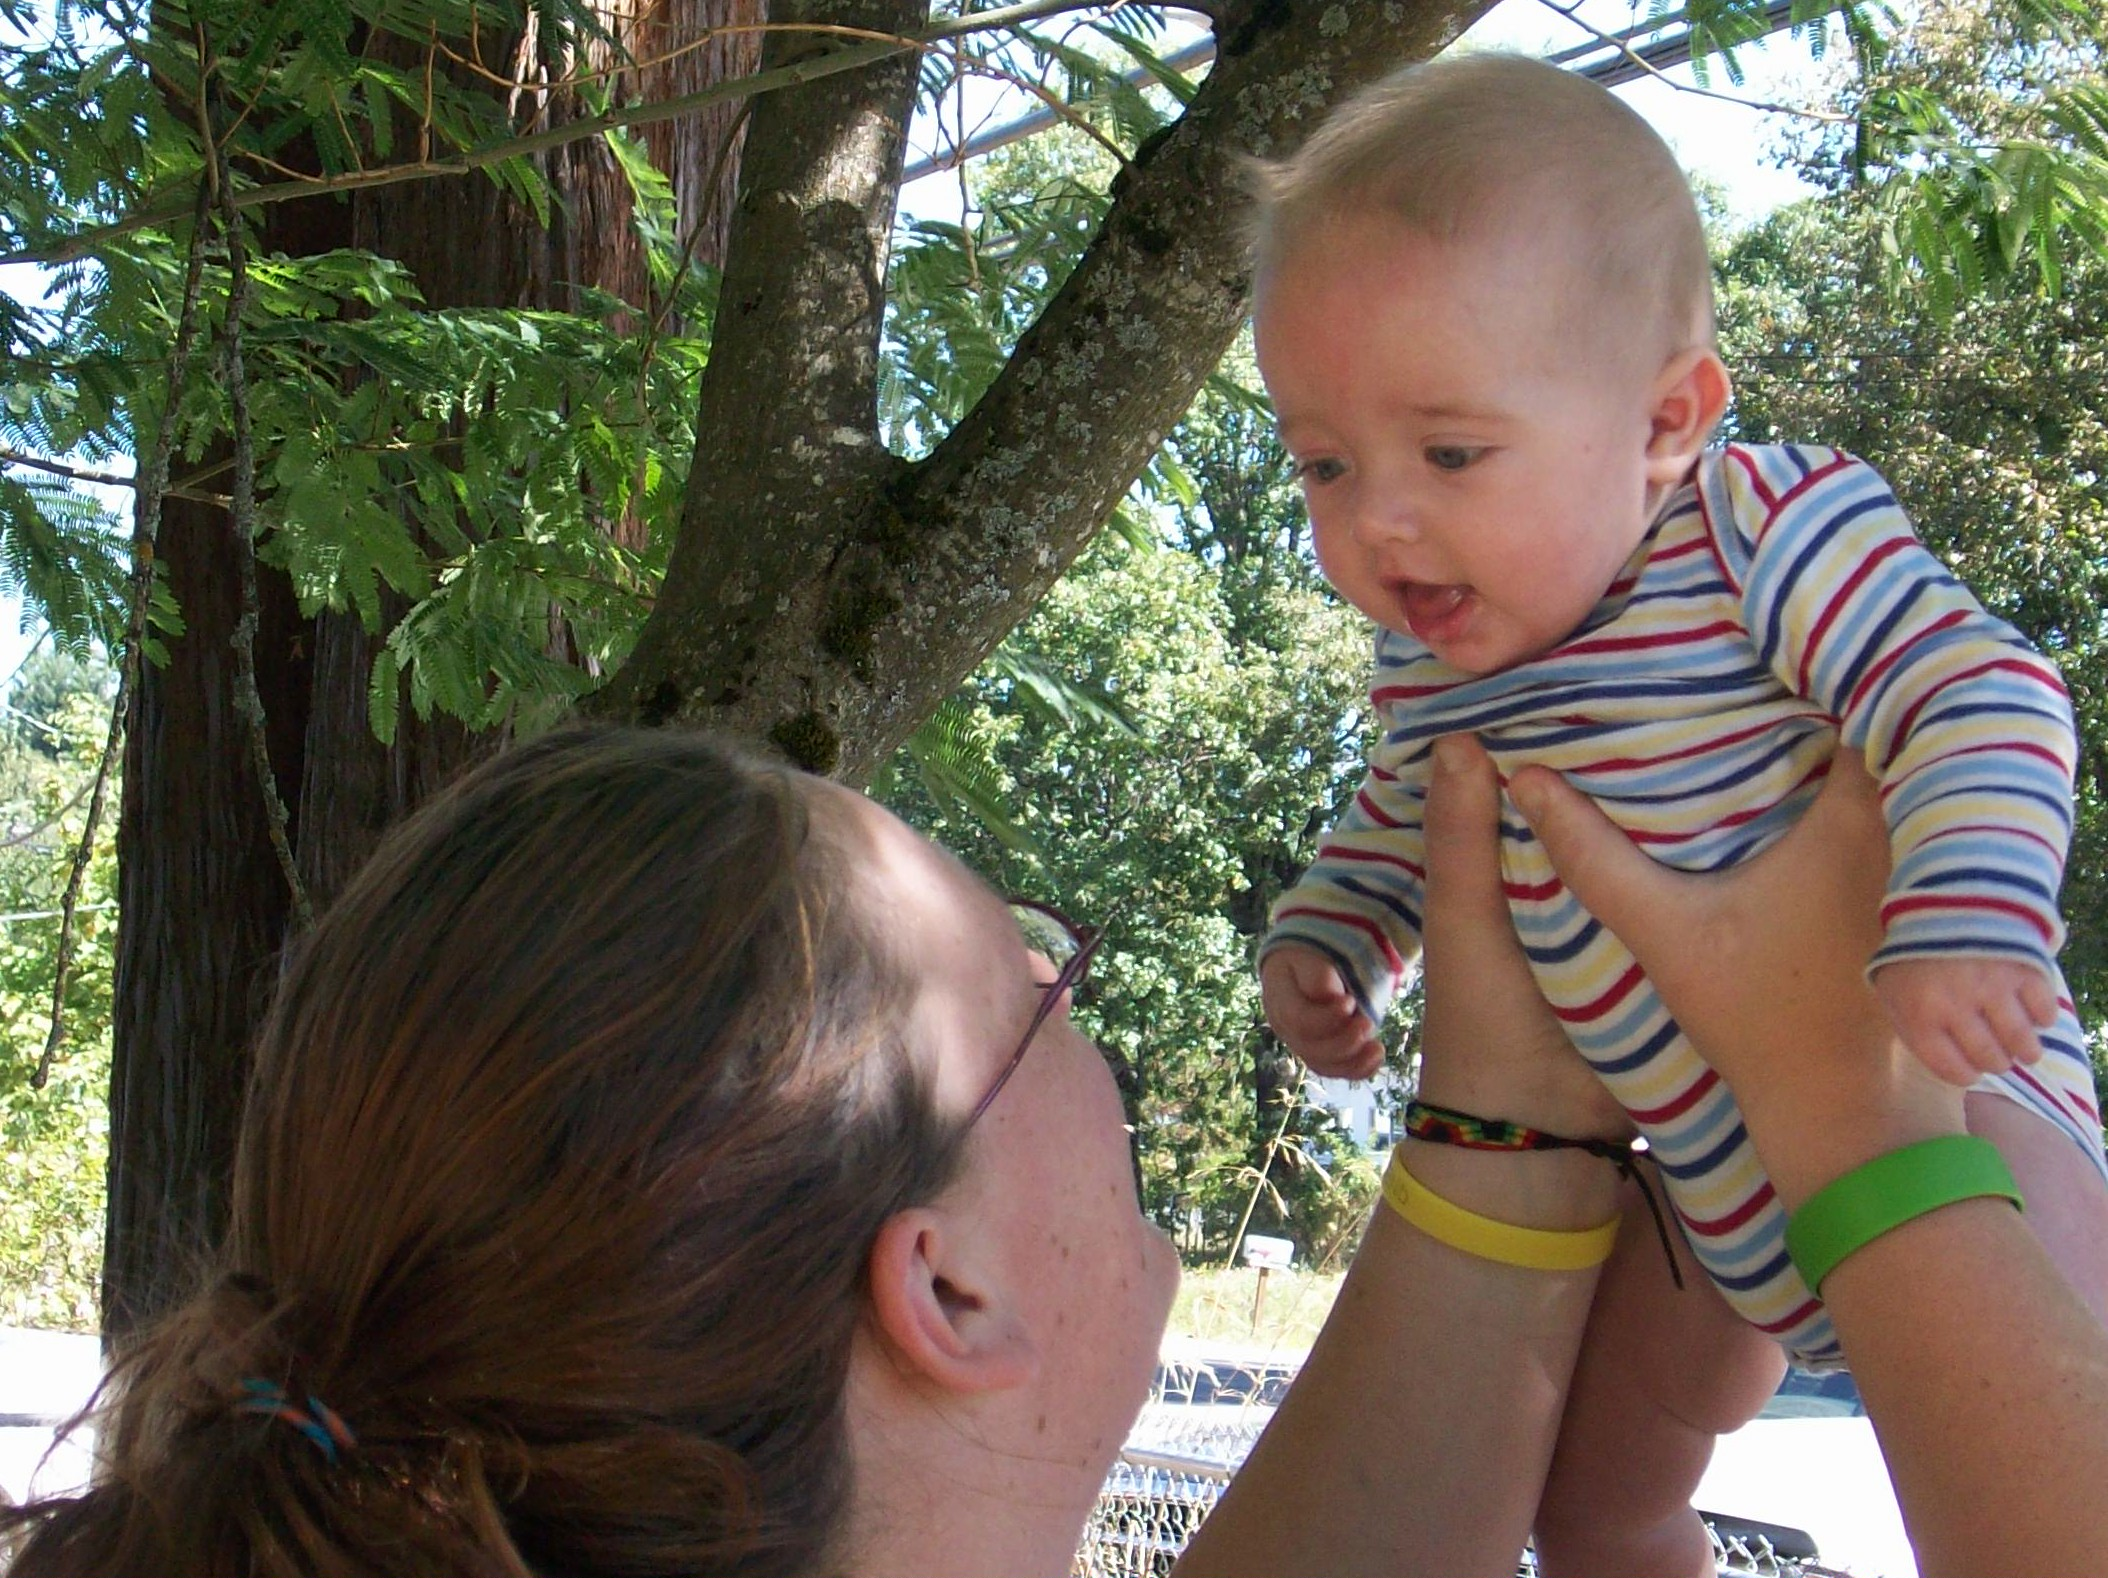 A mother plays with her baby at one of Siskiyou Community Health Center's meet ups to support new moms and babies. Photo courtesy of Siskiyou Community Health Center. (Baby in picture does not represent baby described in the text.)